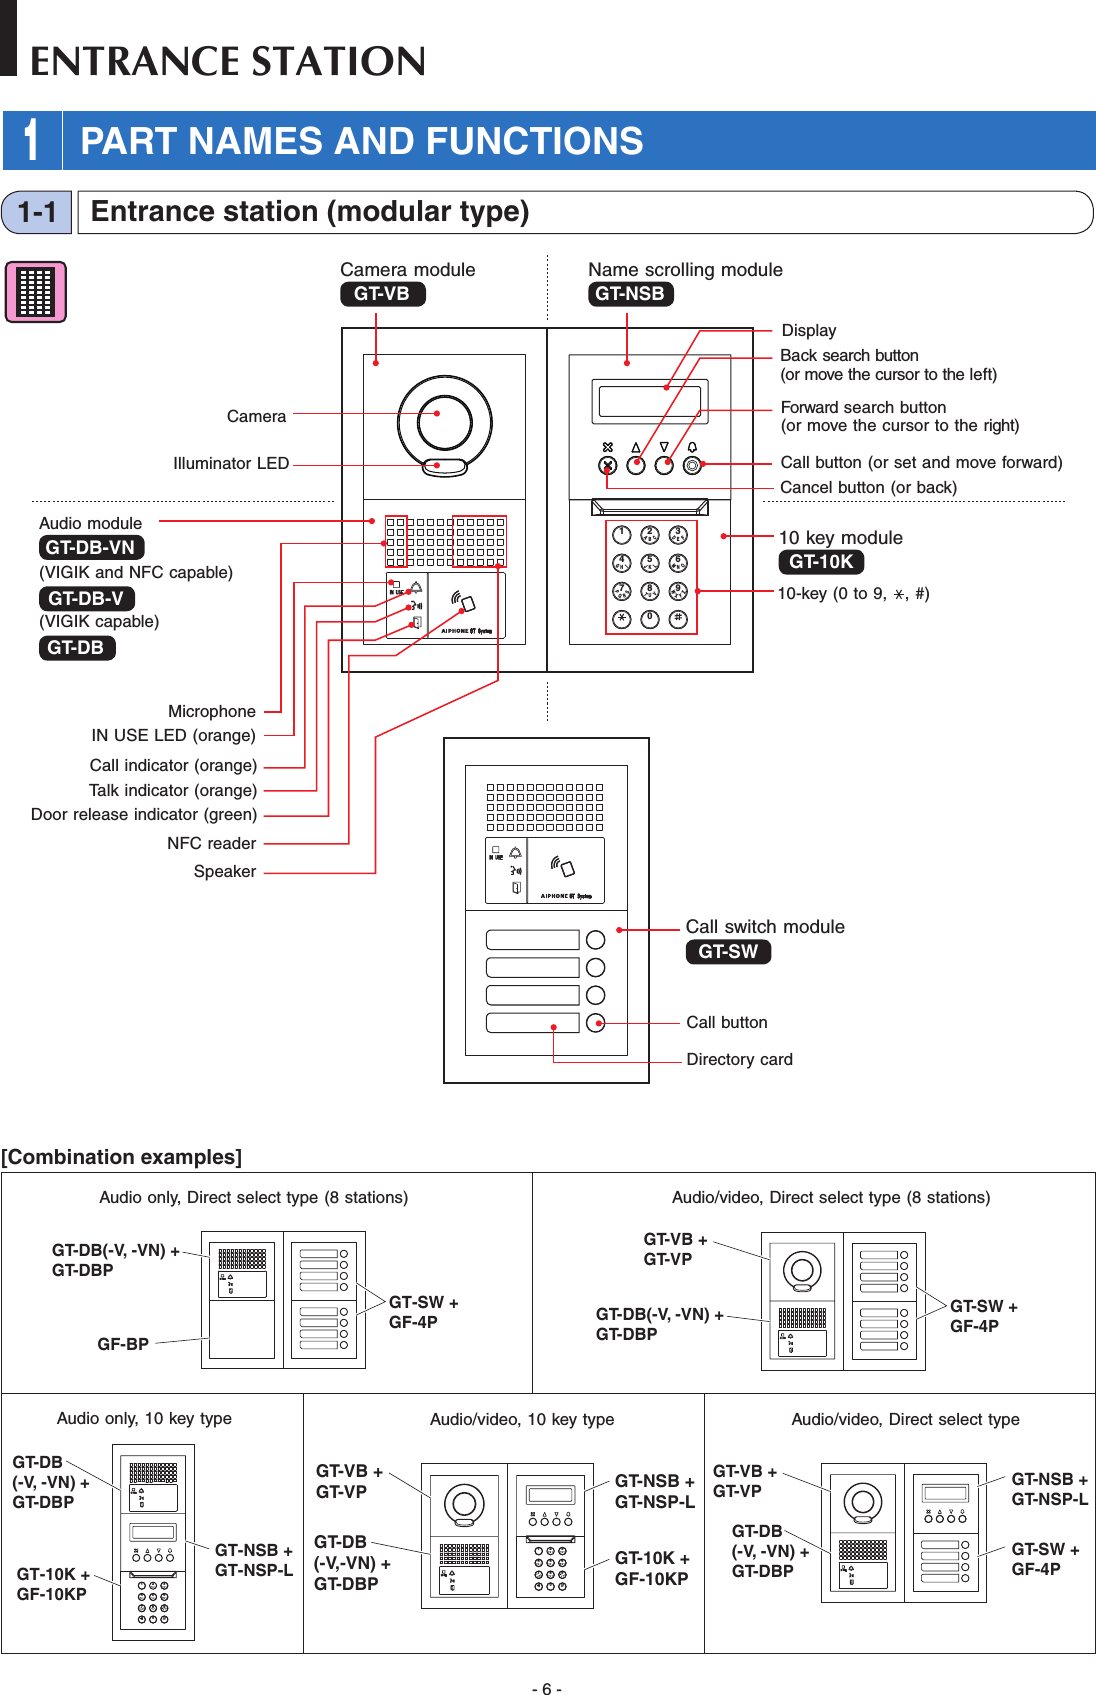 aiphone gt 1c7 wiring diagram Collection-Page 6 of GTDMBN GT Apartment Inter System User Manual ENG GT DMB MKB 17 05 29 7-i